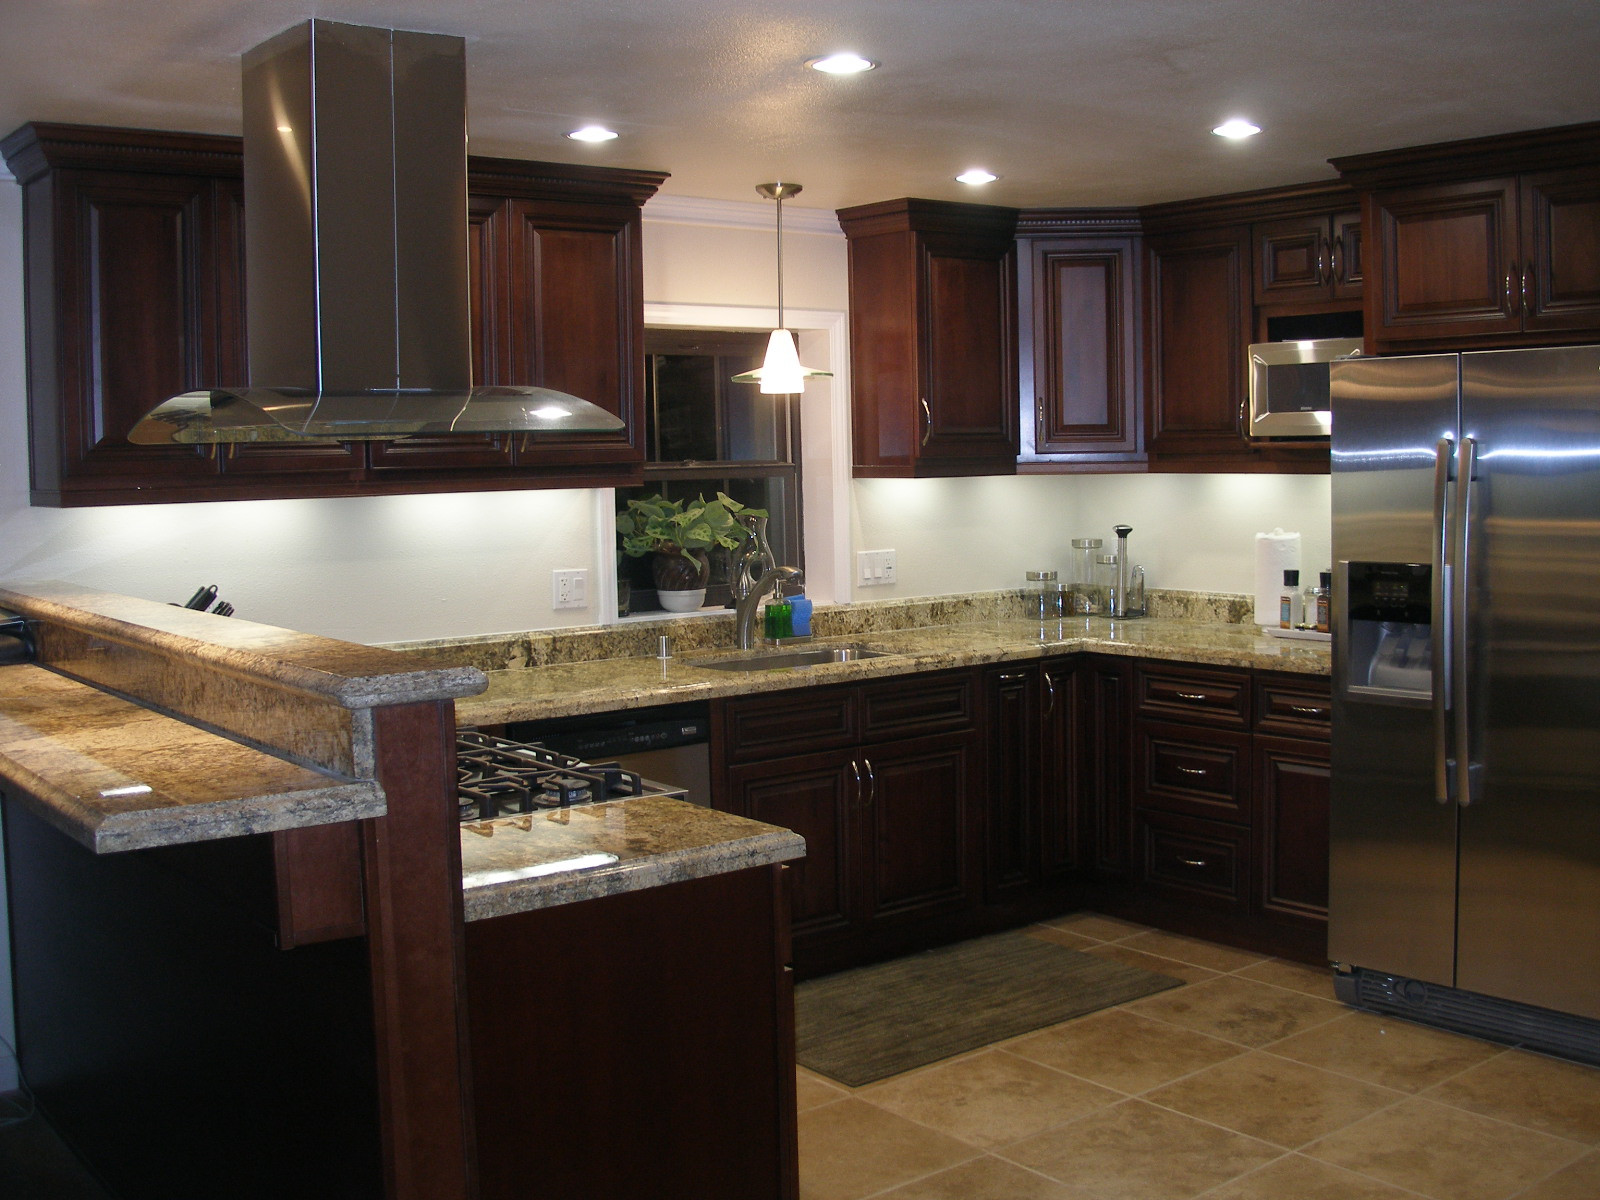 Kitchen remodel bay easy construction for Kitchen renovation ideas photos